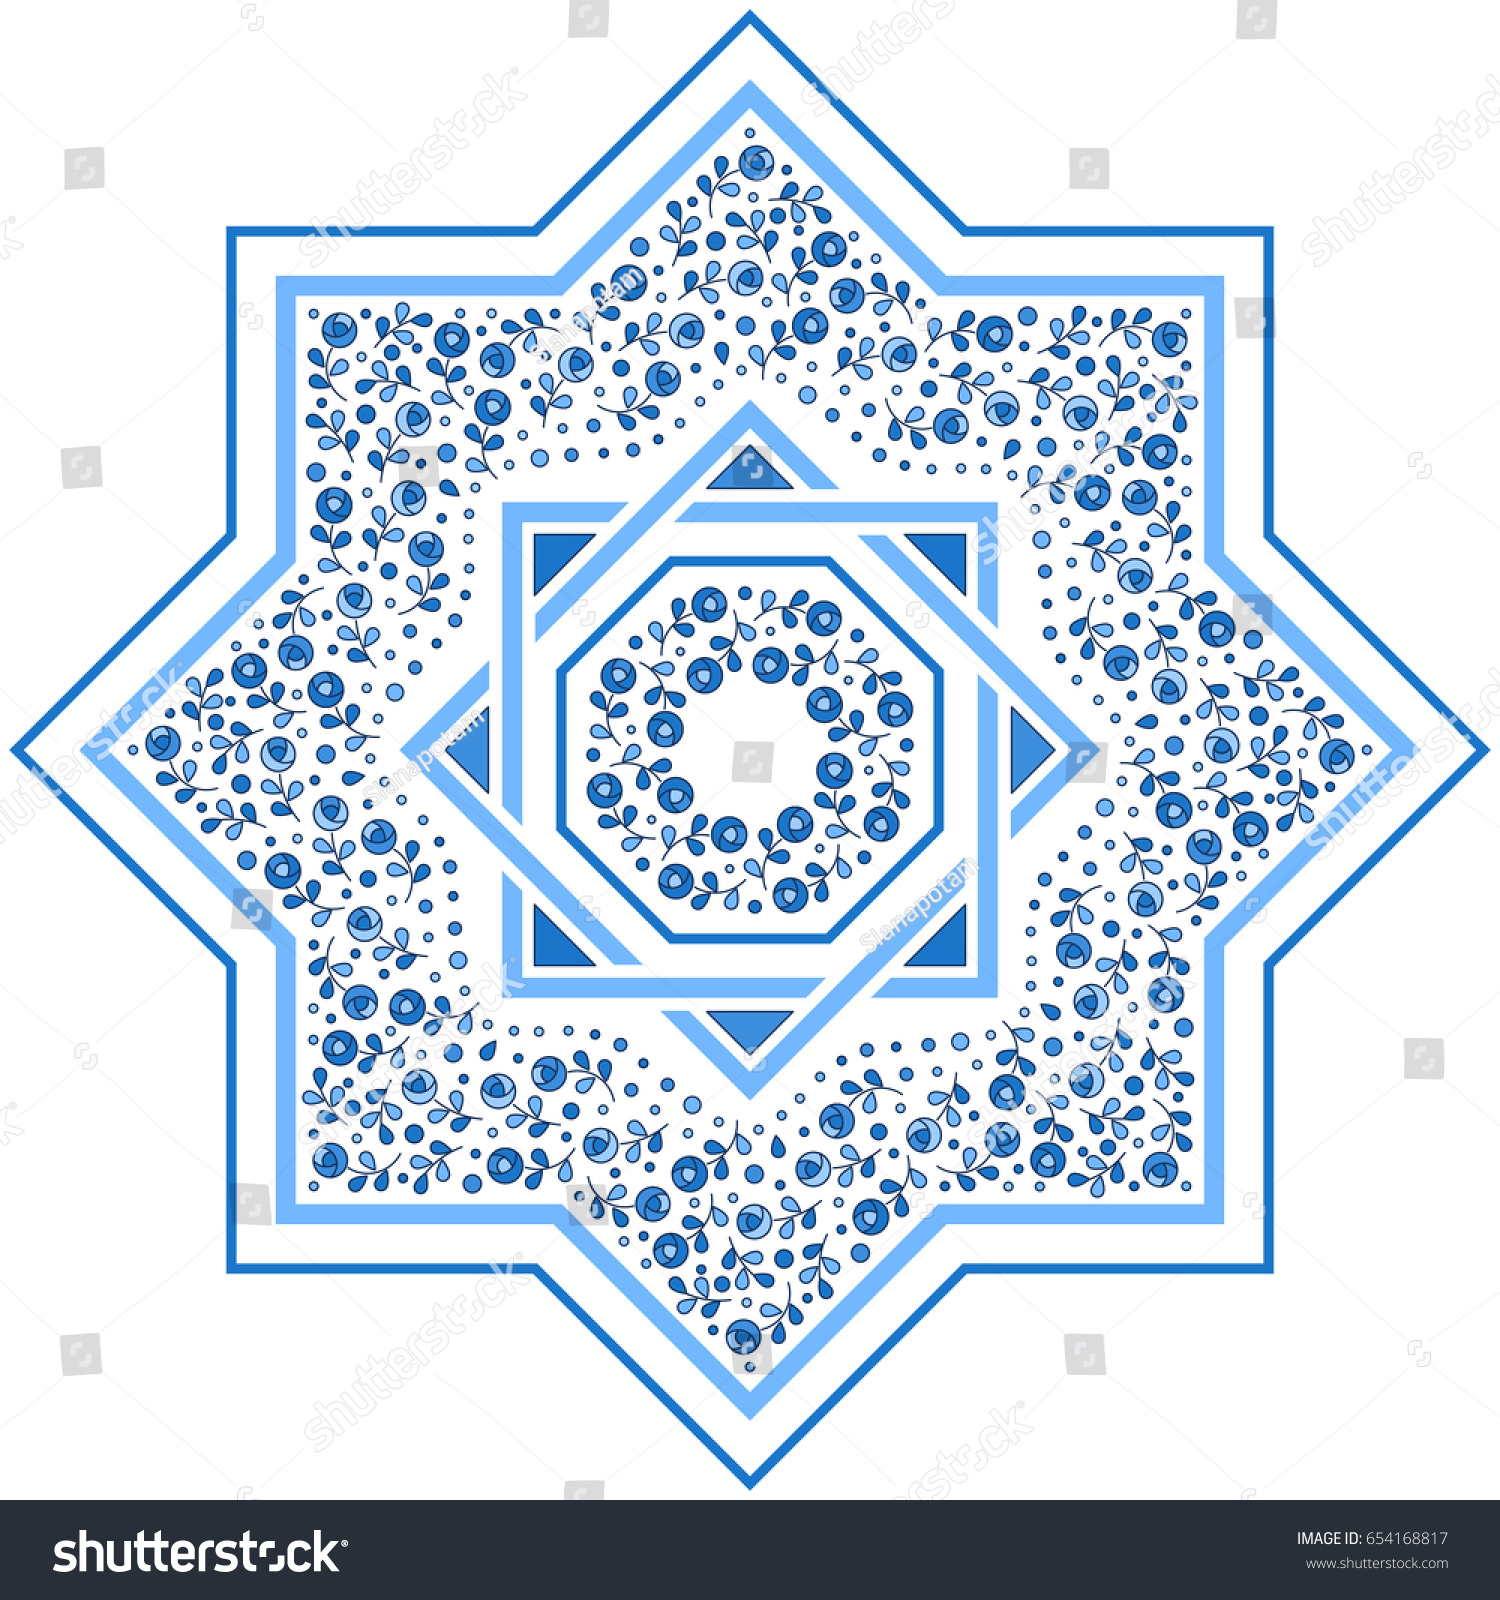 Patterned floor tile moroccan pattern design stock vector patterned floor tile moroccan pattern design eight ray star vector illustration dailygadgetfo Images